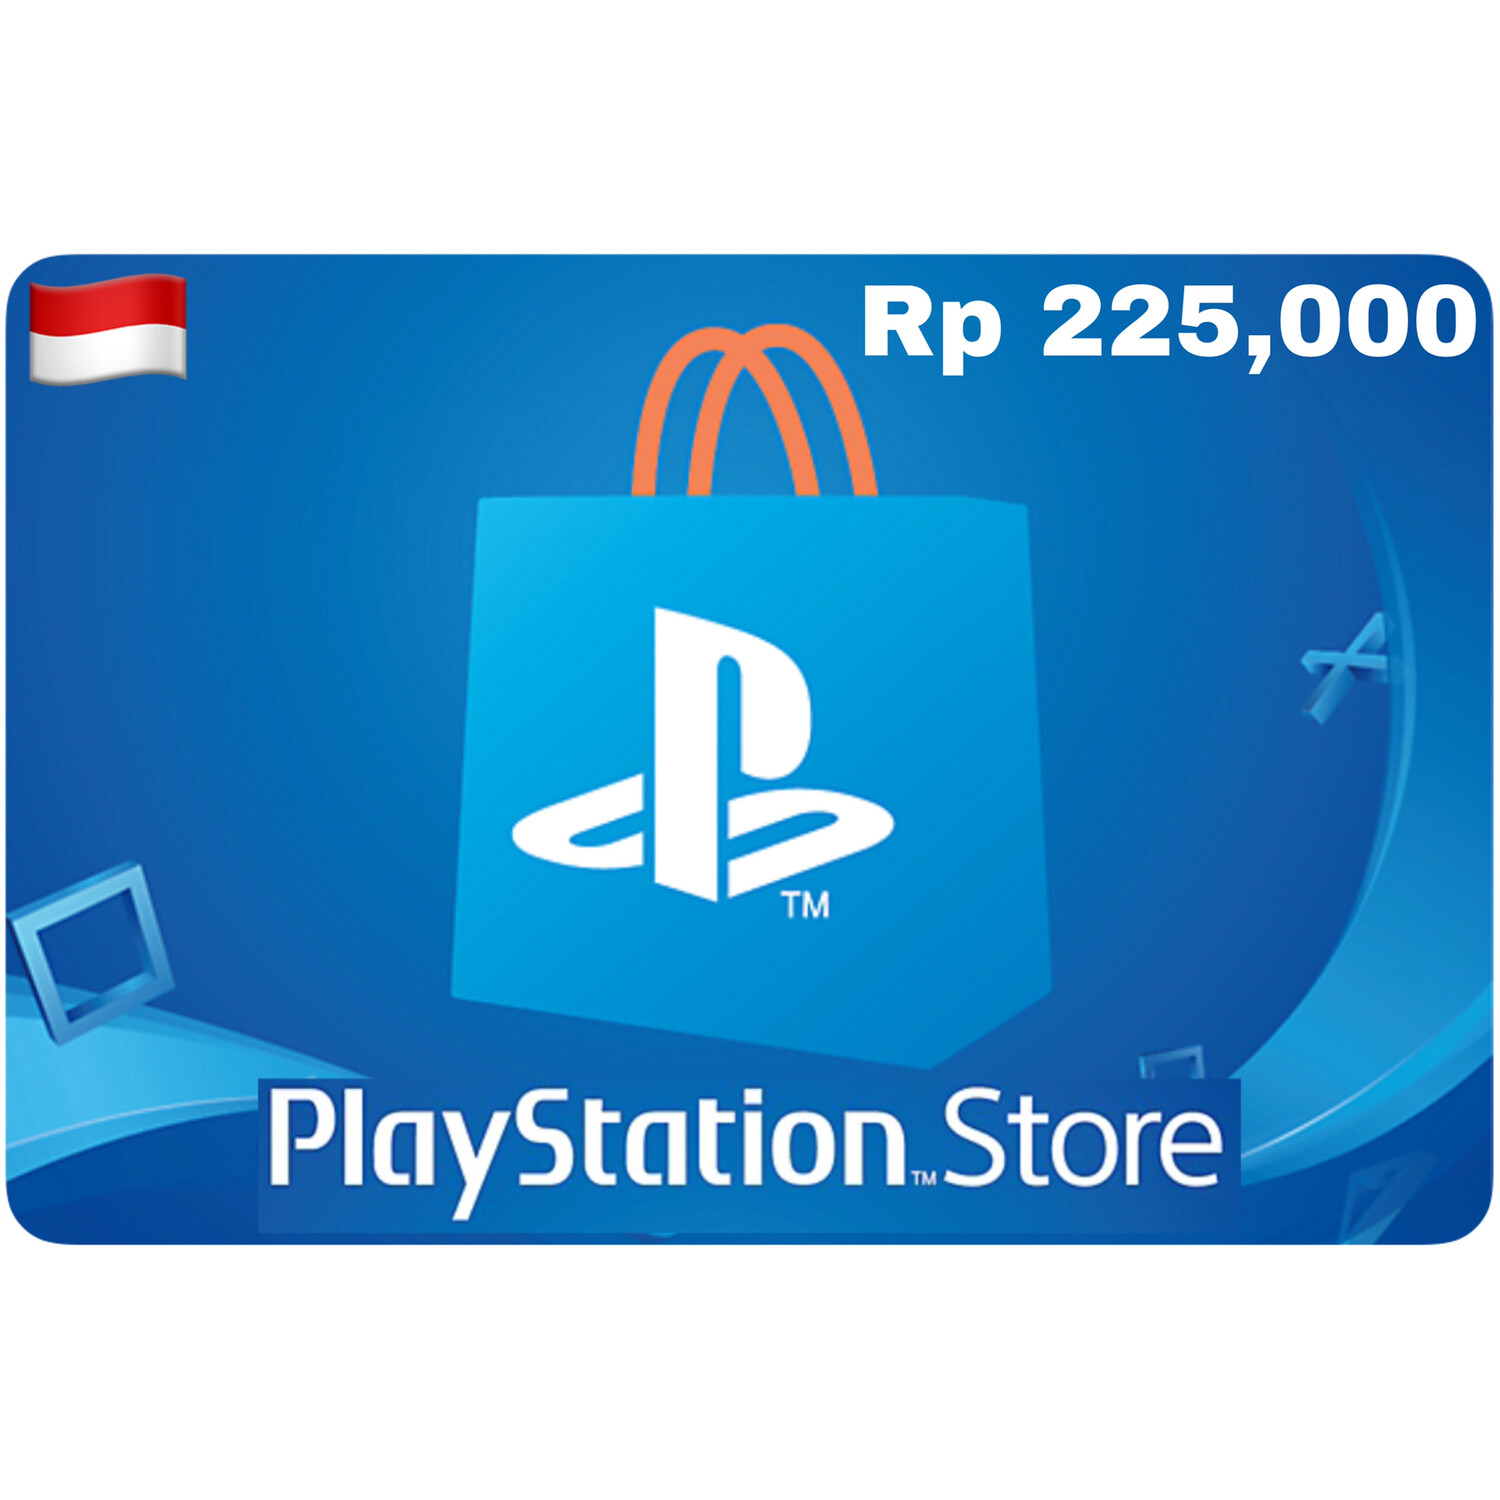 Playstation Store Gift Card Indonesia IDR 225,000